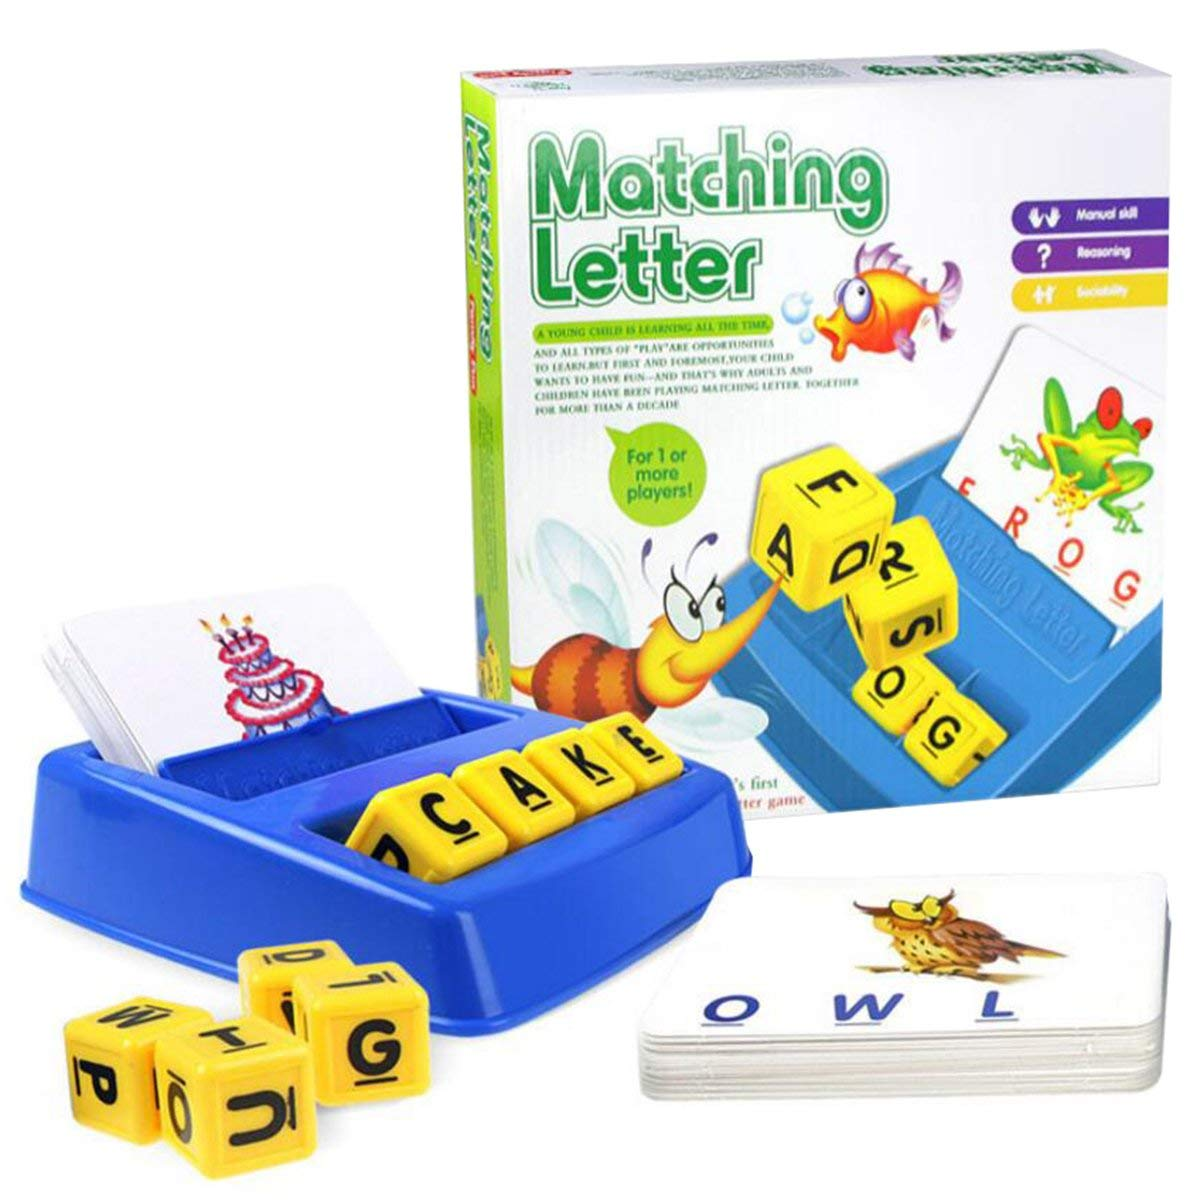 New School Matching Letter Spelling Learning Game Center by New School Leader